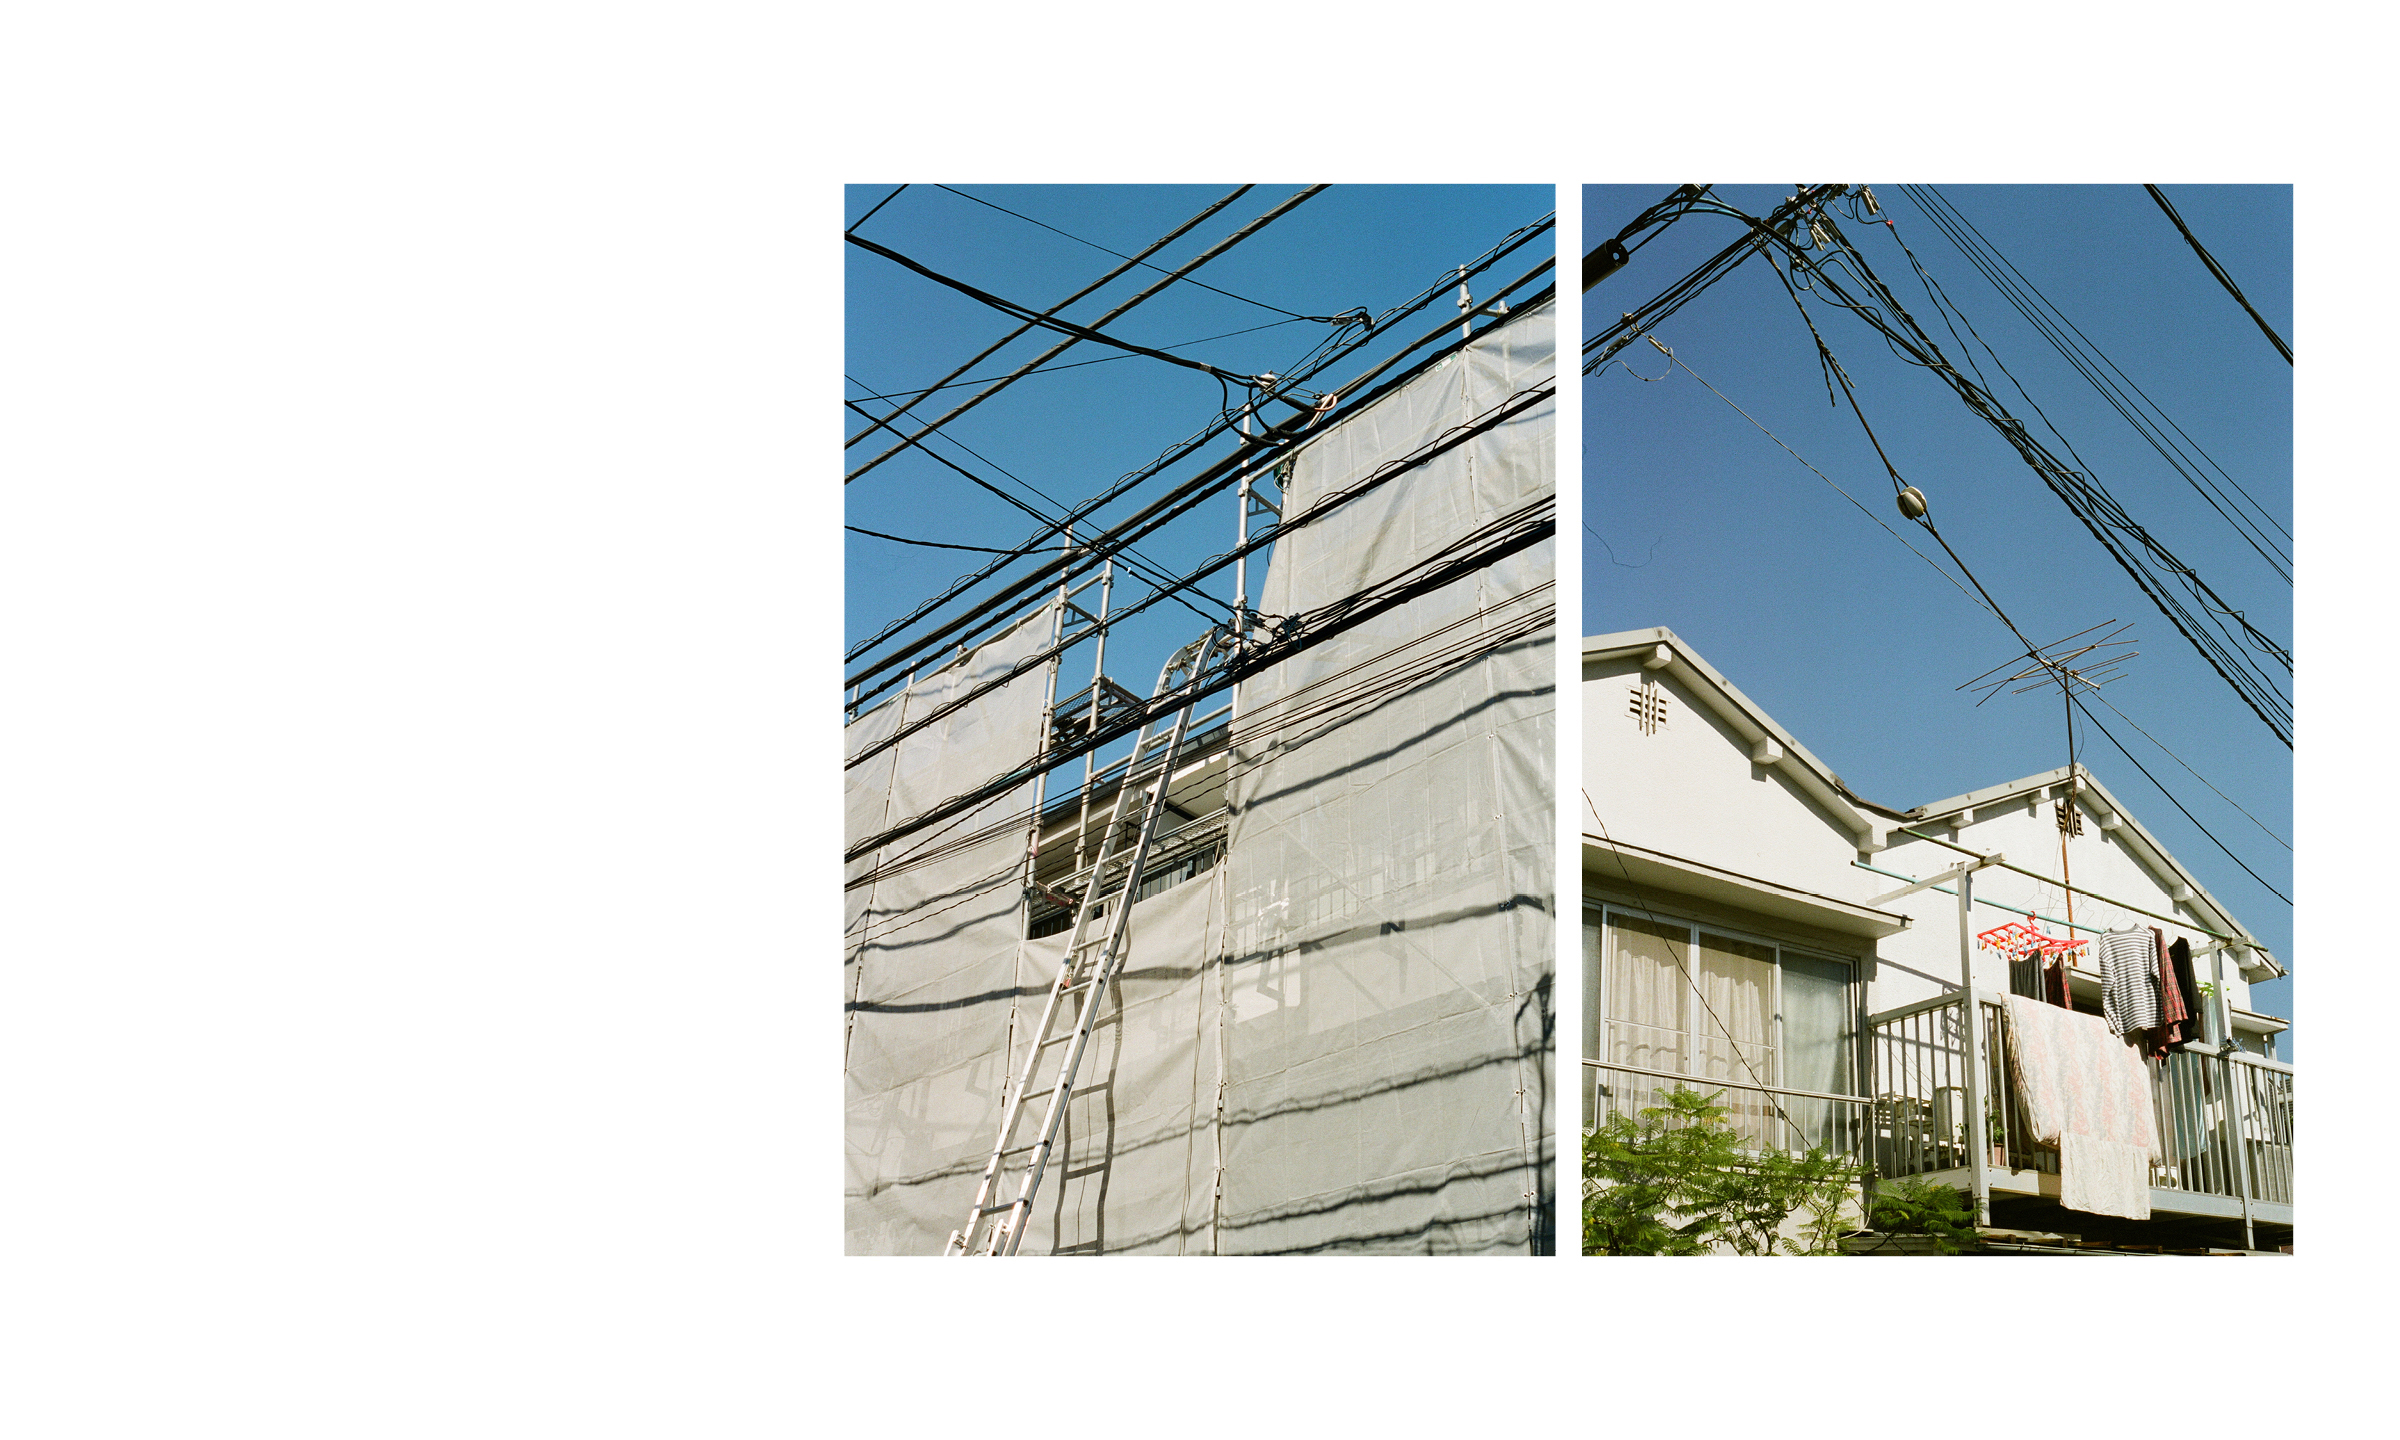 Tokyo_Photography_Case_Study_Layout13.jpg